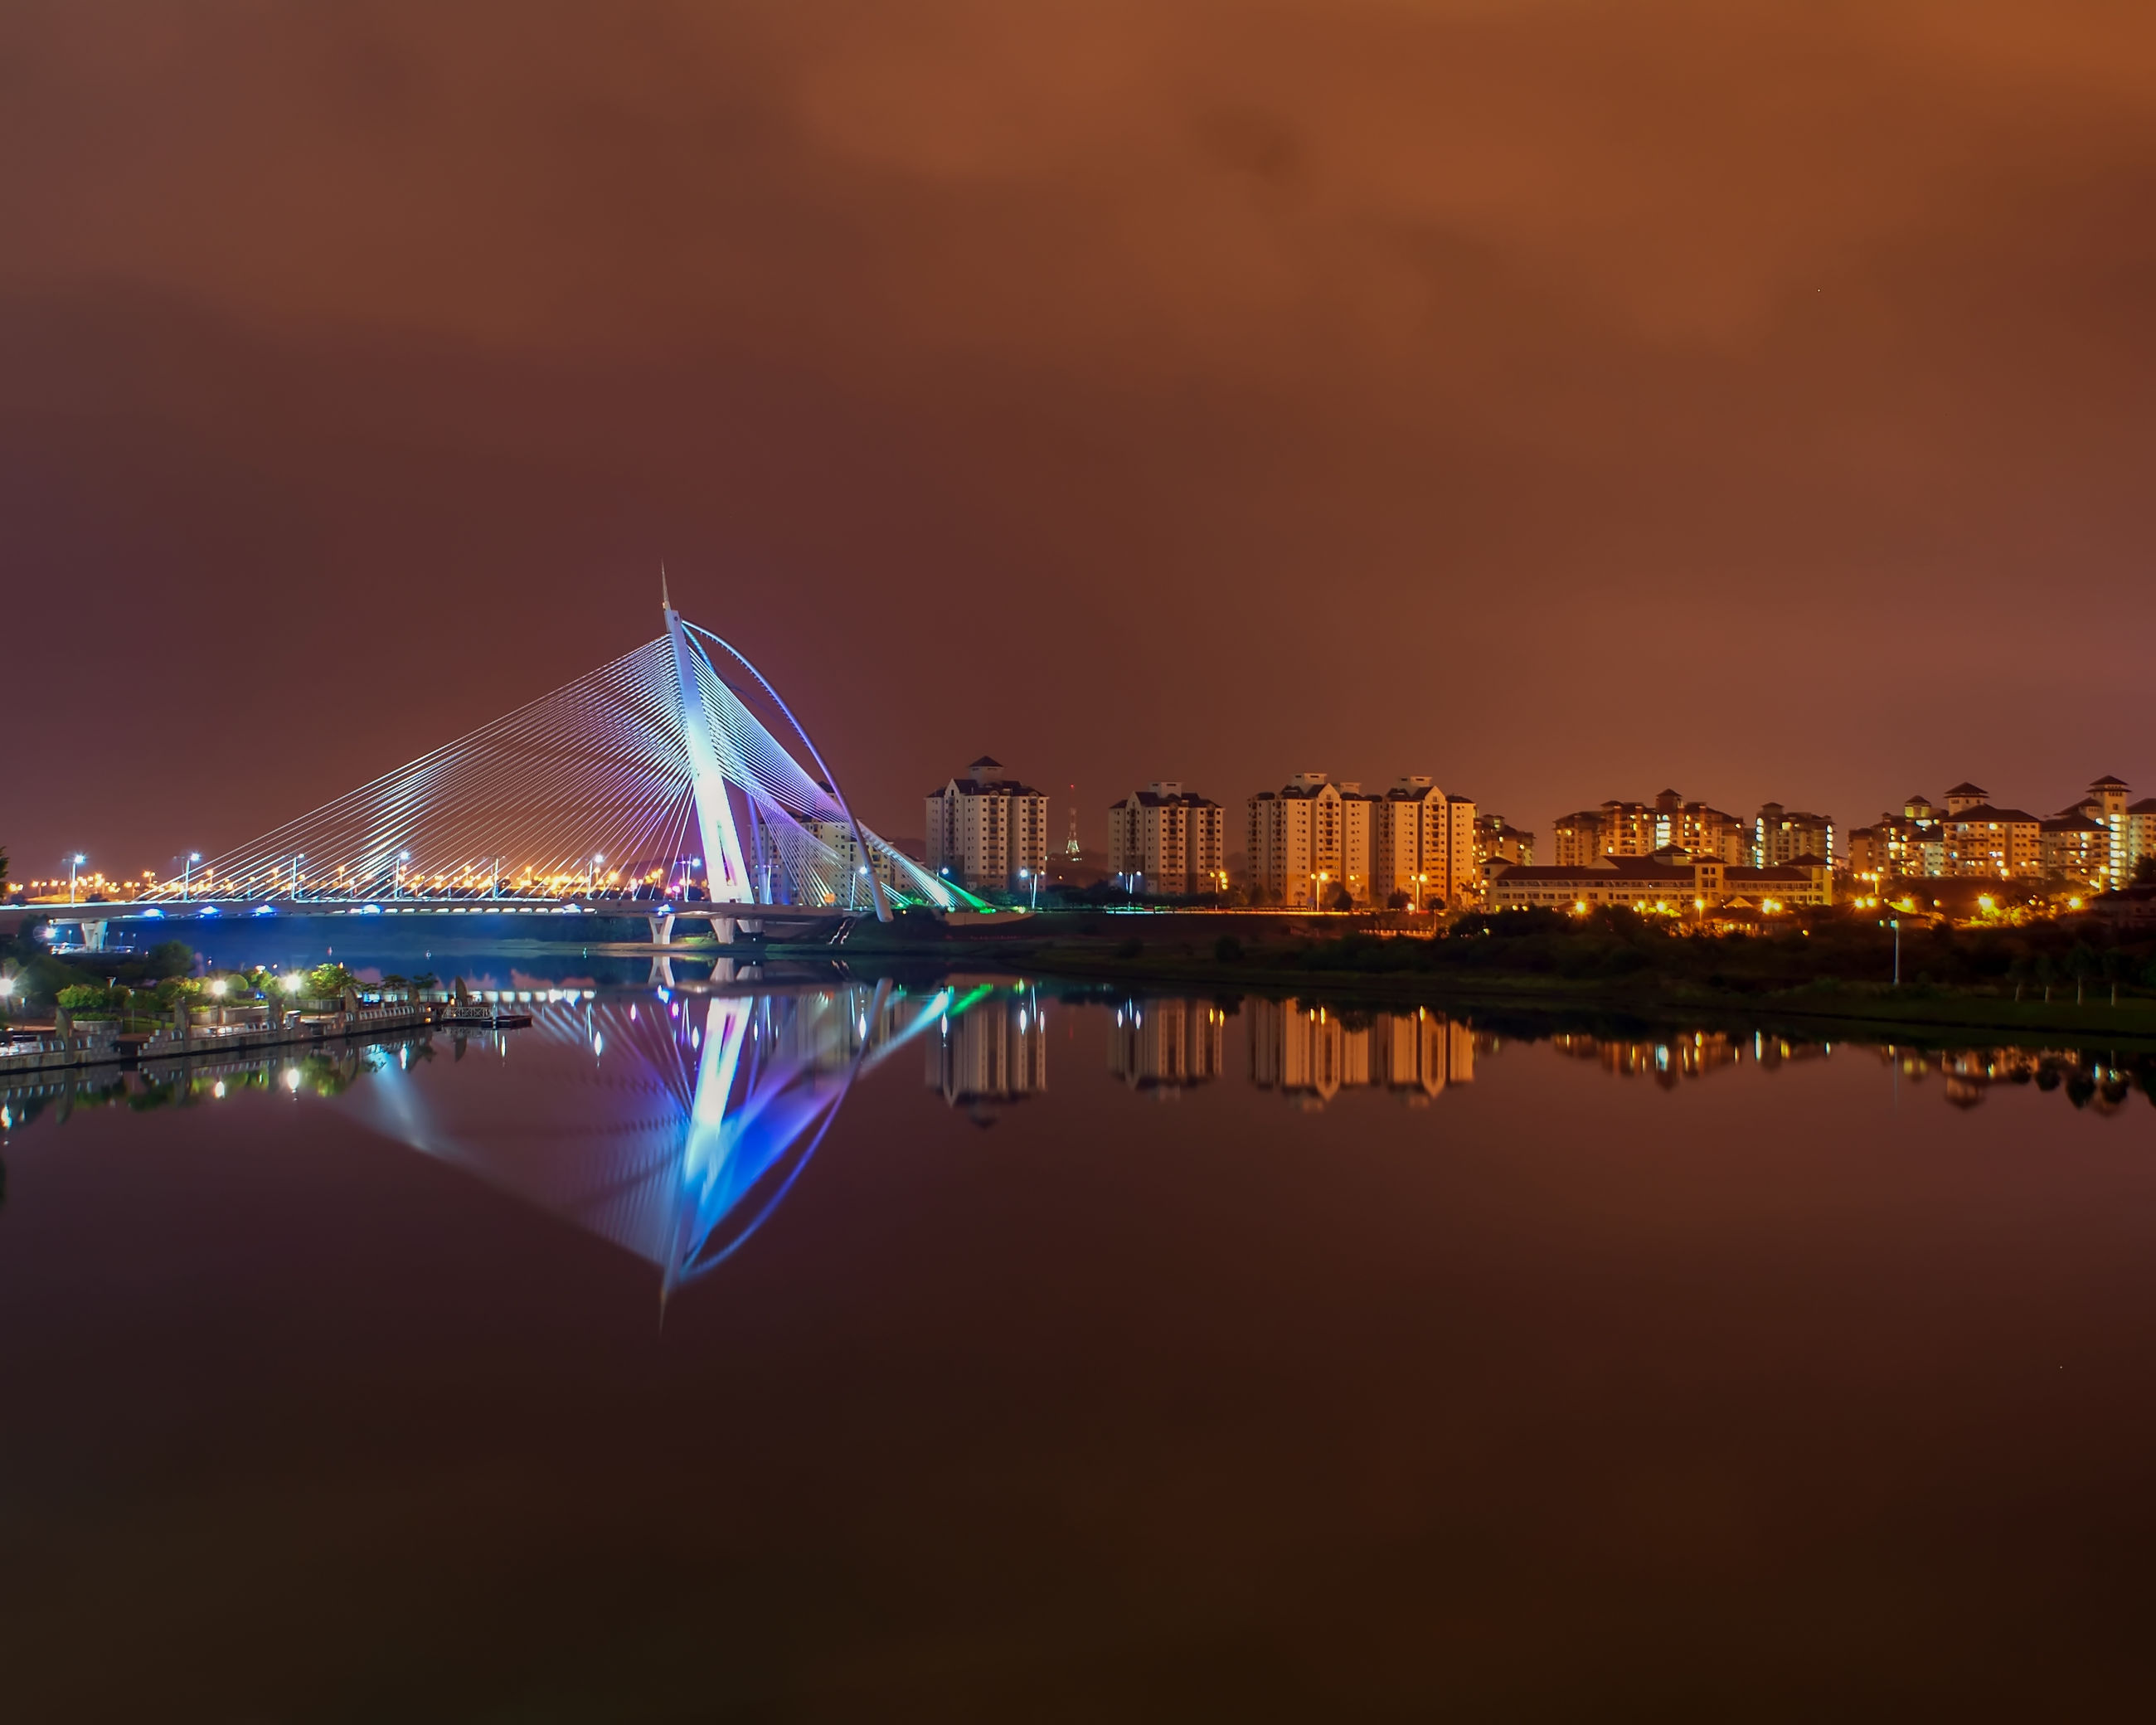 reflection, water, architecture, sky, waterfront, building exterior, built structure, illuminated, no people, night, city, nature, building, river, travel destinations, sunset, symmetry, long exposure, beauty in nature, outdoors, cityscape